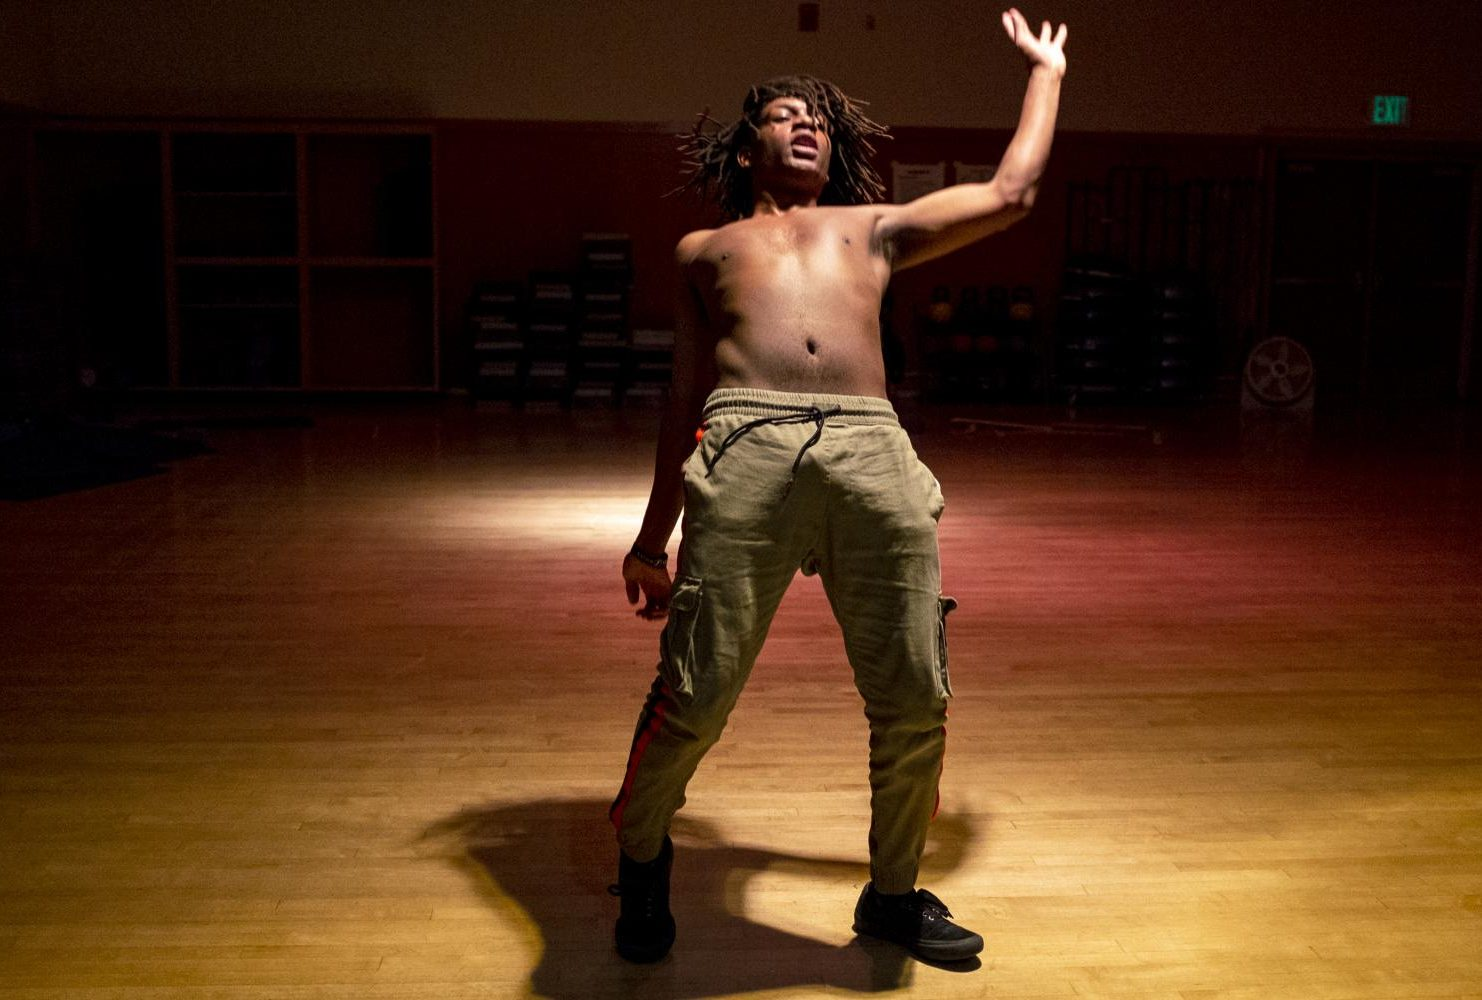 Dance major Latraye Allen performs a hip-hop routine in a dance studio at American River College, on Feb. 6, 2019. Allen is enrolled in the Dance Production: studio and Stage class and says his main focus is in hip-hop dancing. (Photo by Patrick Hyun Wilson)